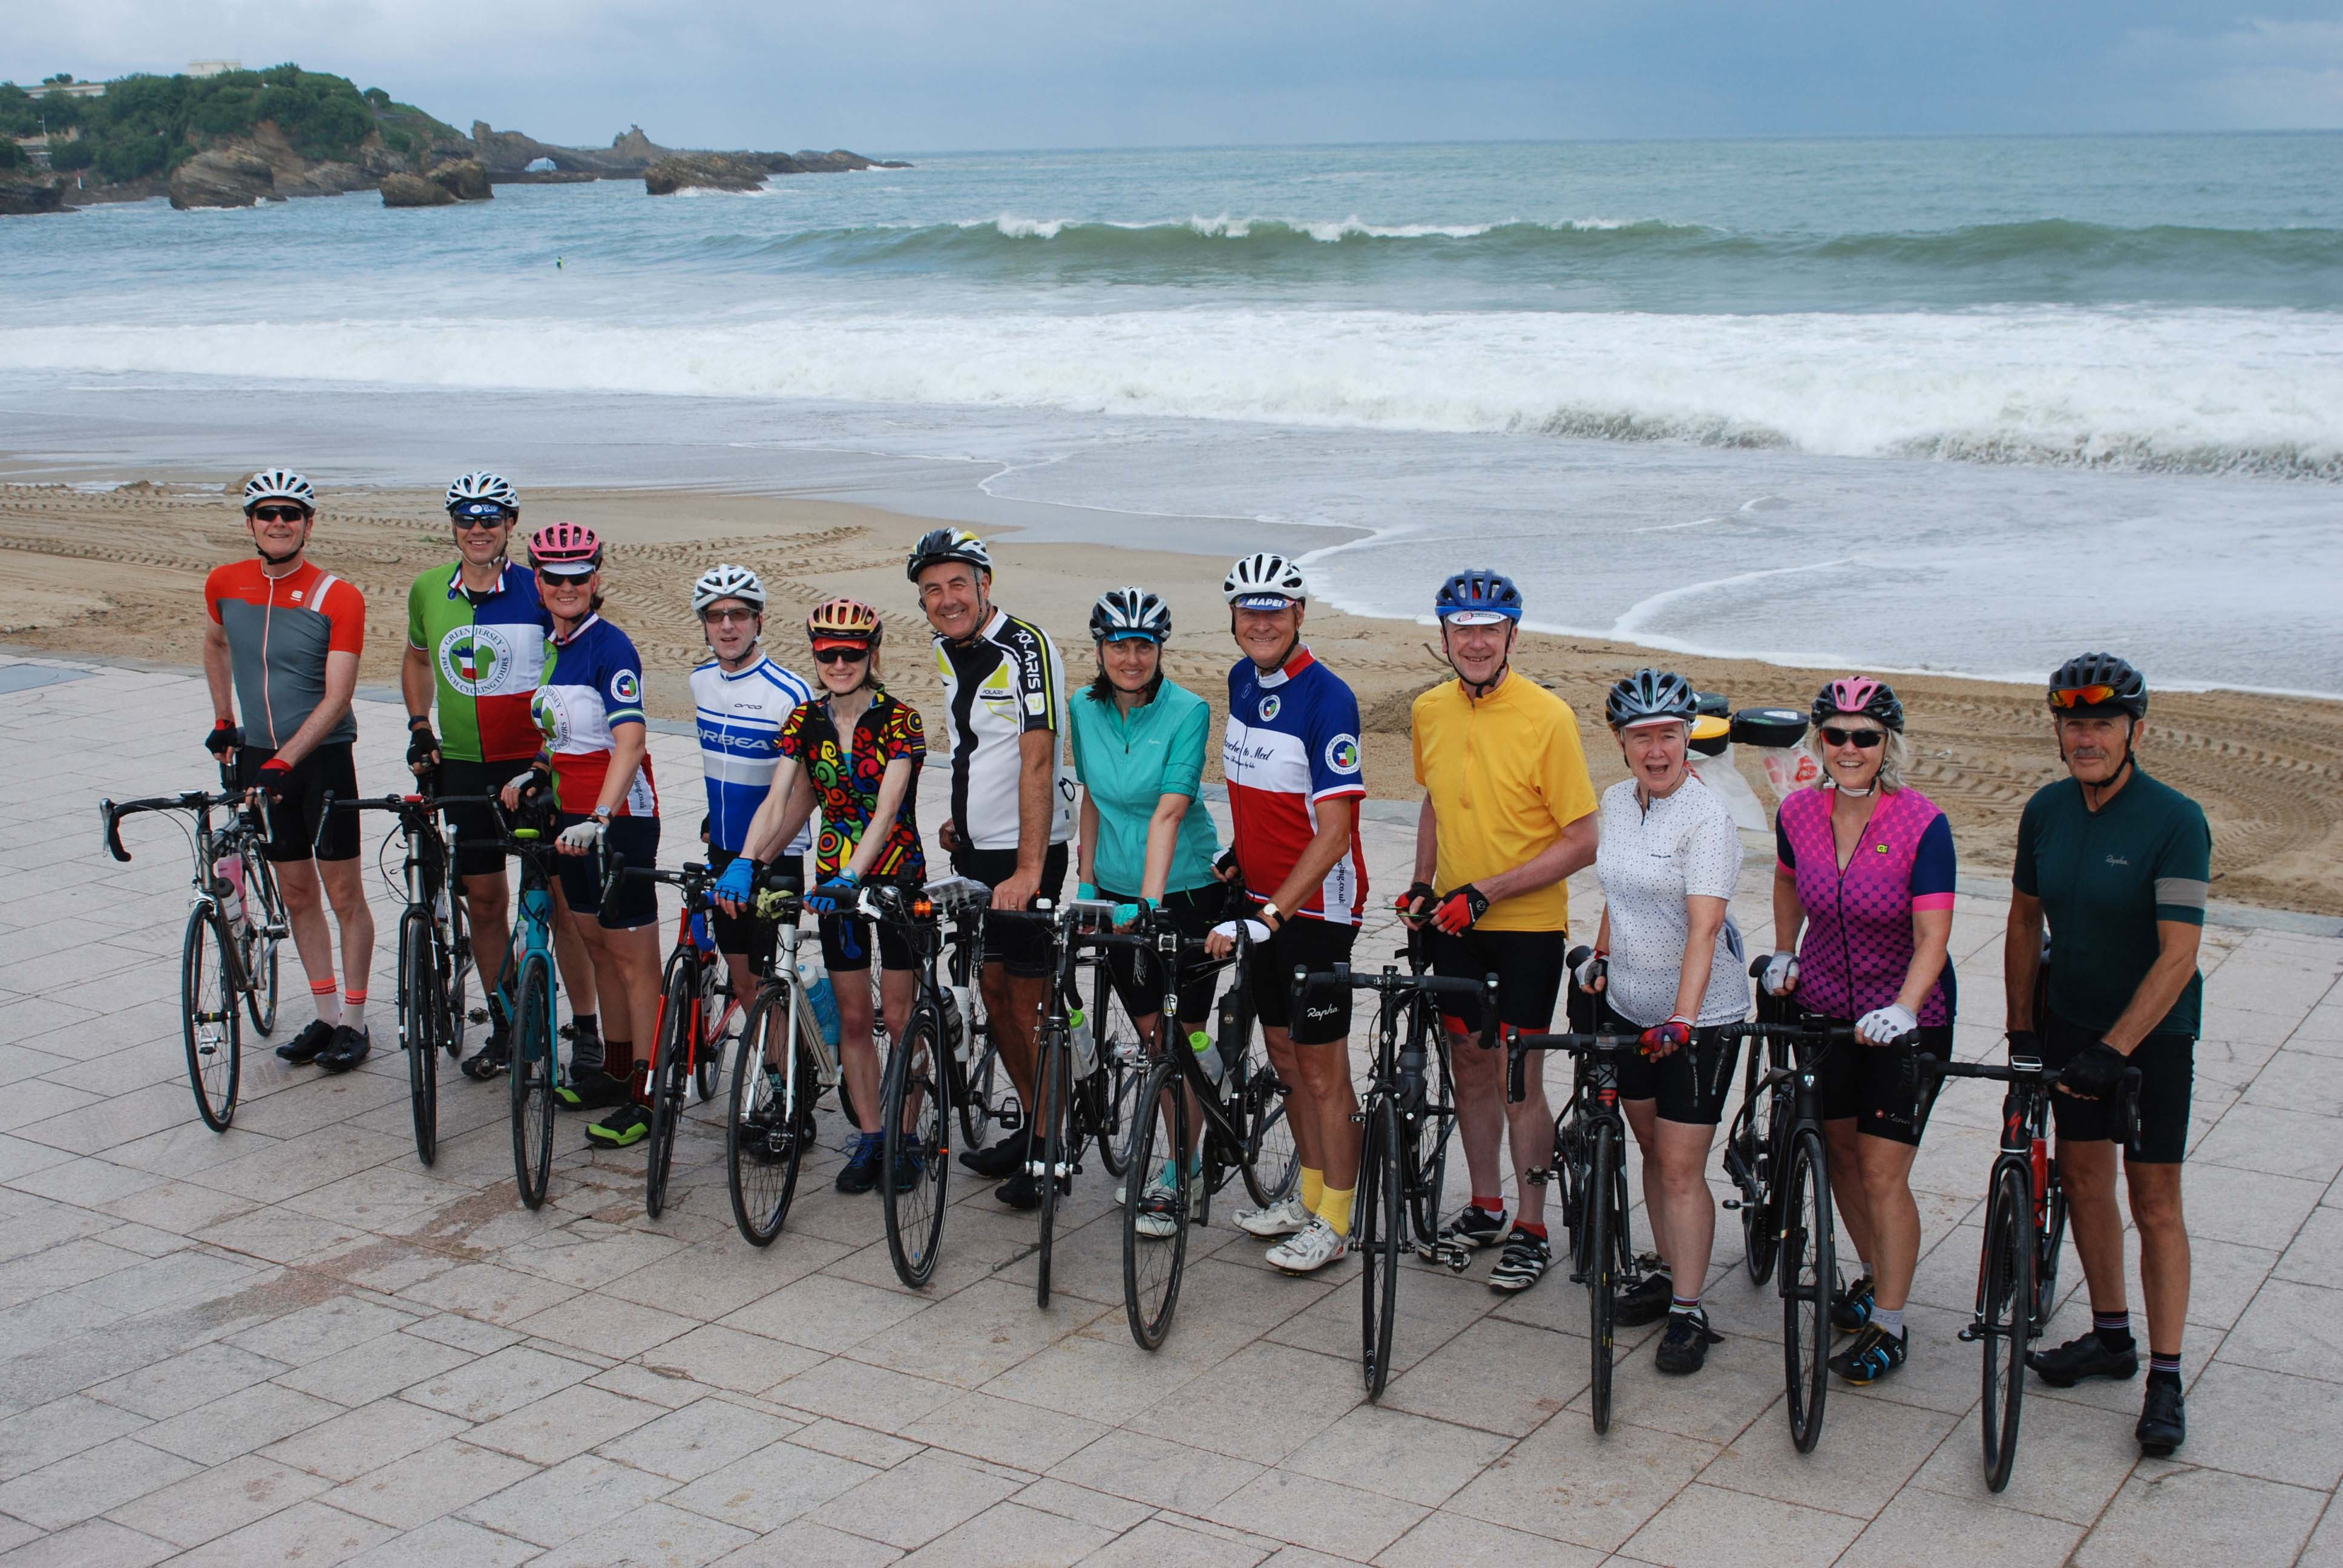 Setting off on our cycling adventure from Biarritz to Roscoff